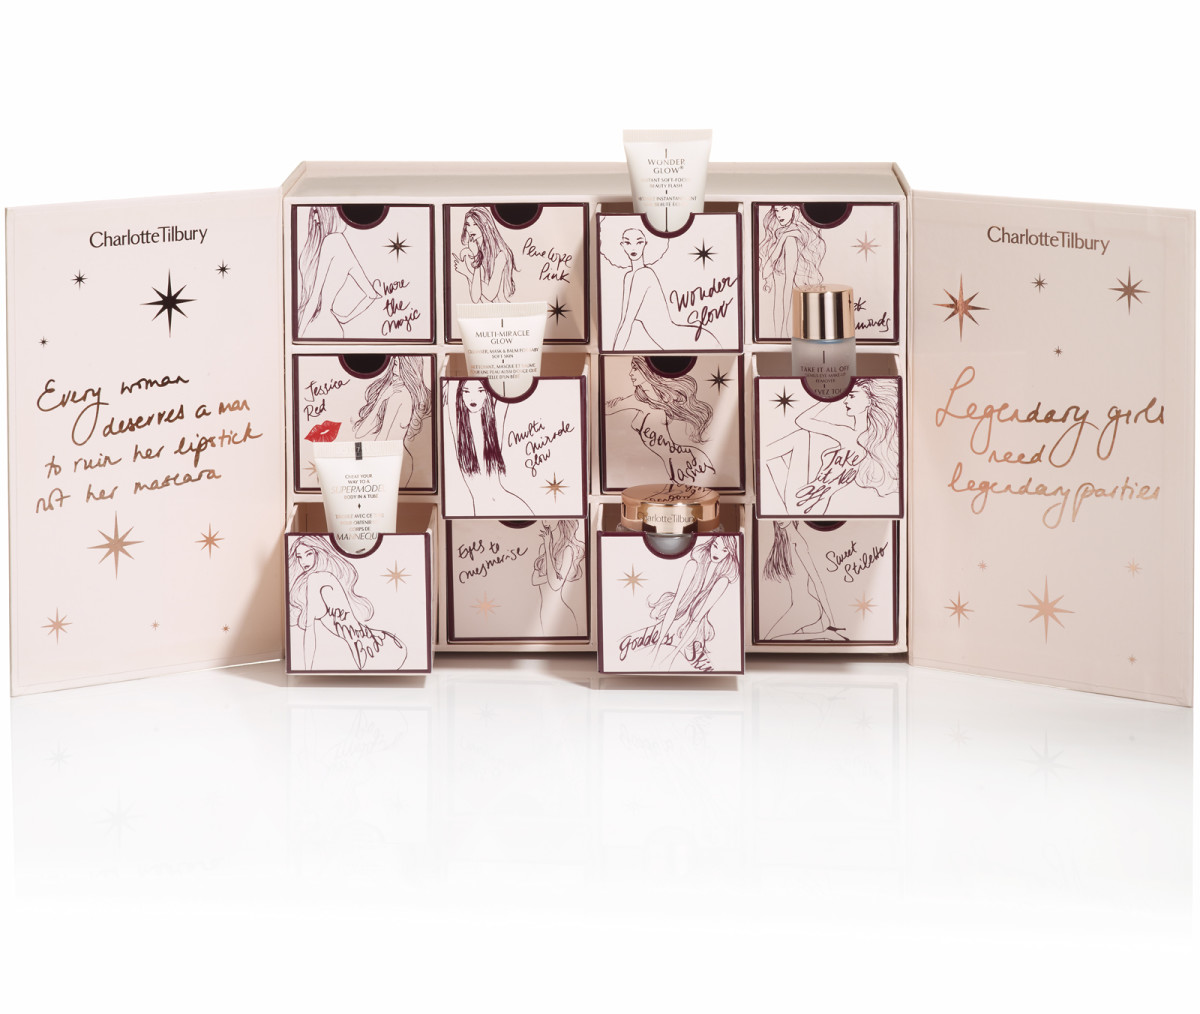 charlotte tilbury advent calendar box 2016